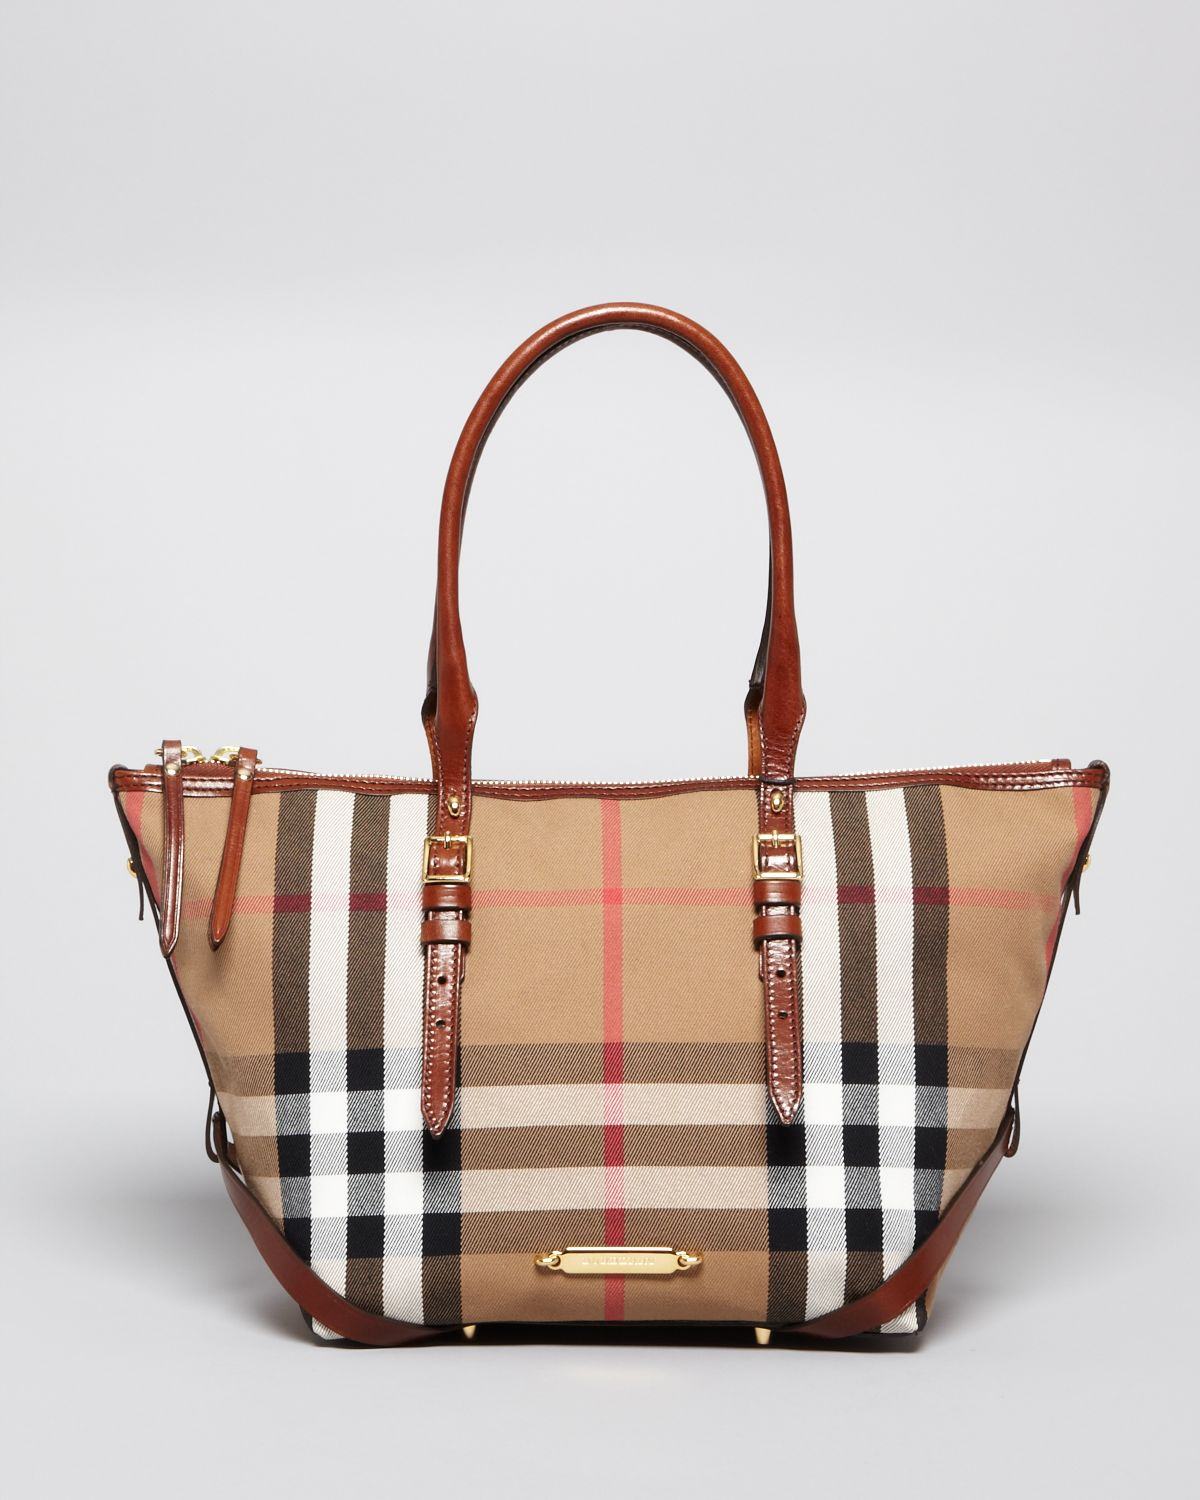 Lyst - Burberry Tote Small Salisbury in Brown da2e25dfa8813